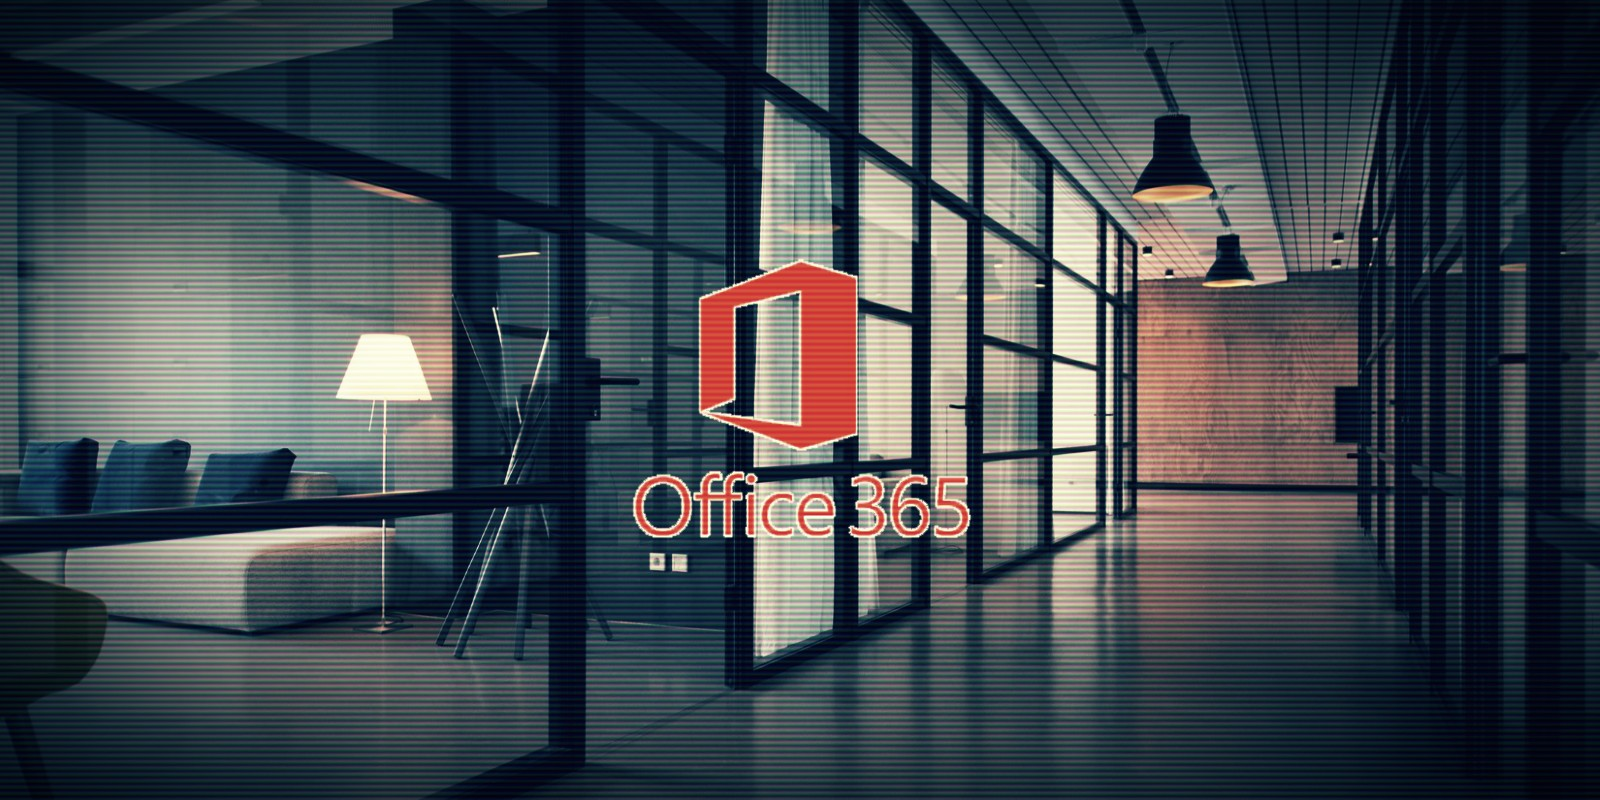 Office 365 adds protection against downgrade and MITM attacks